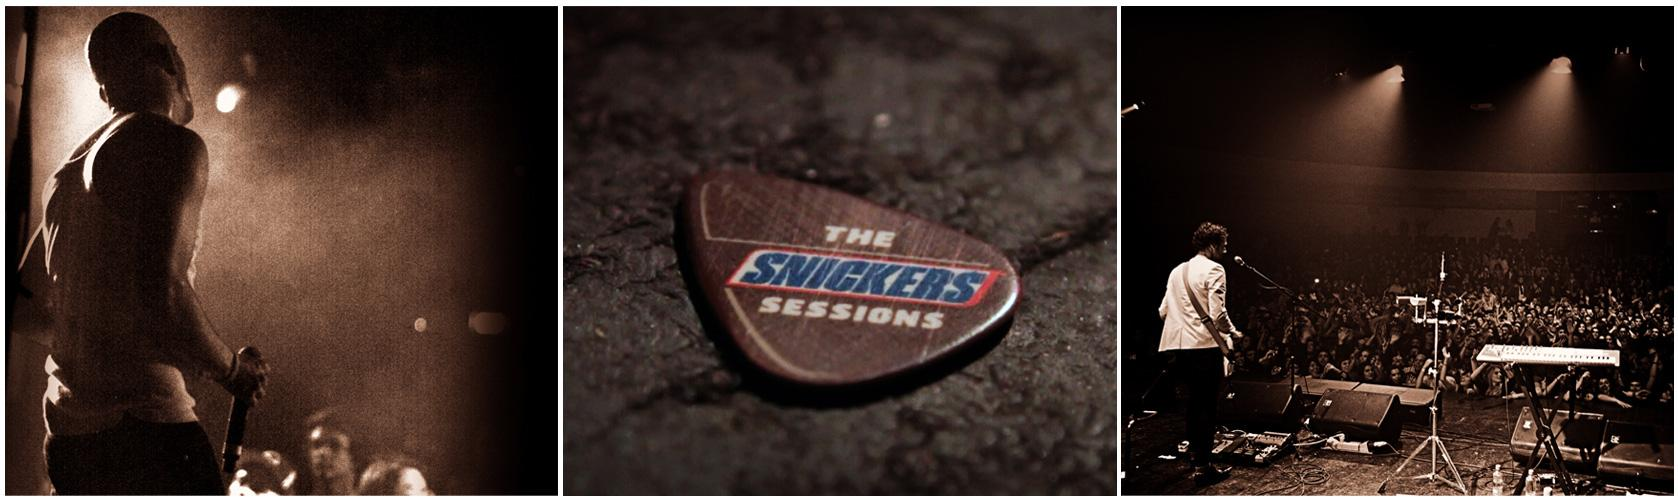 Snickers Ambient Ad -  Sessions